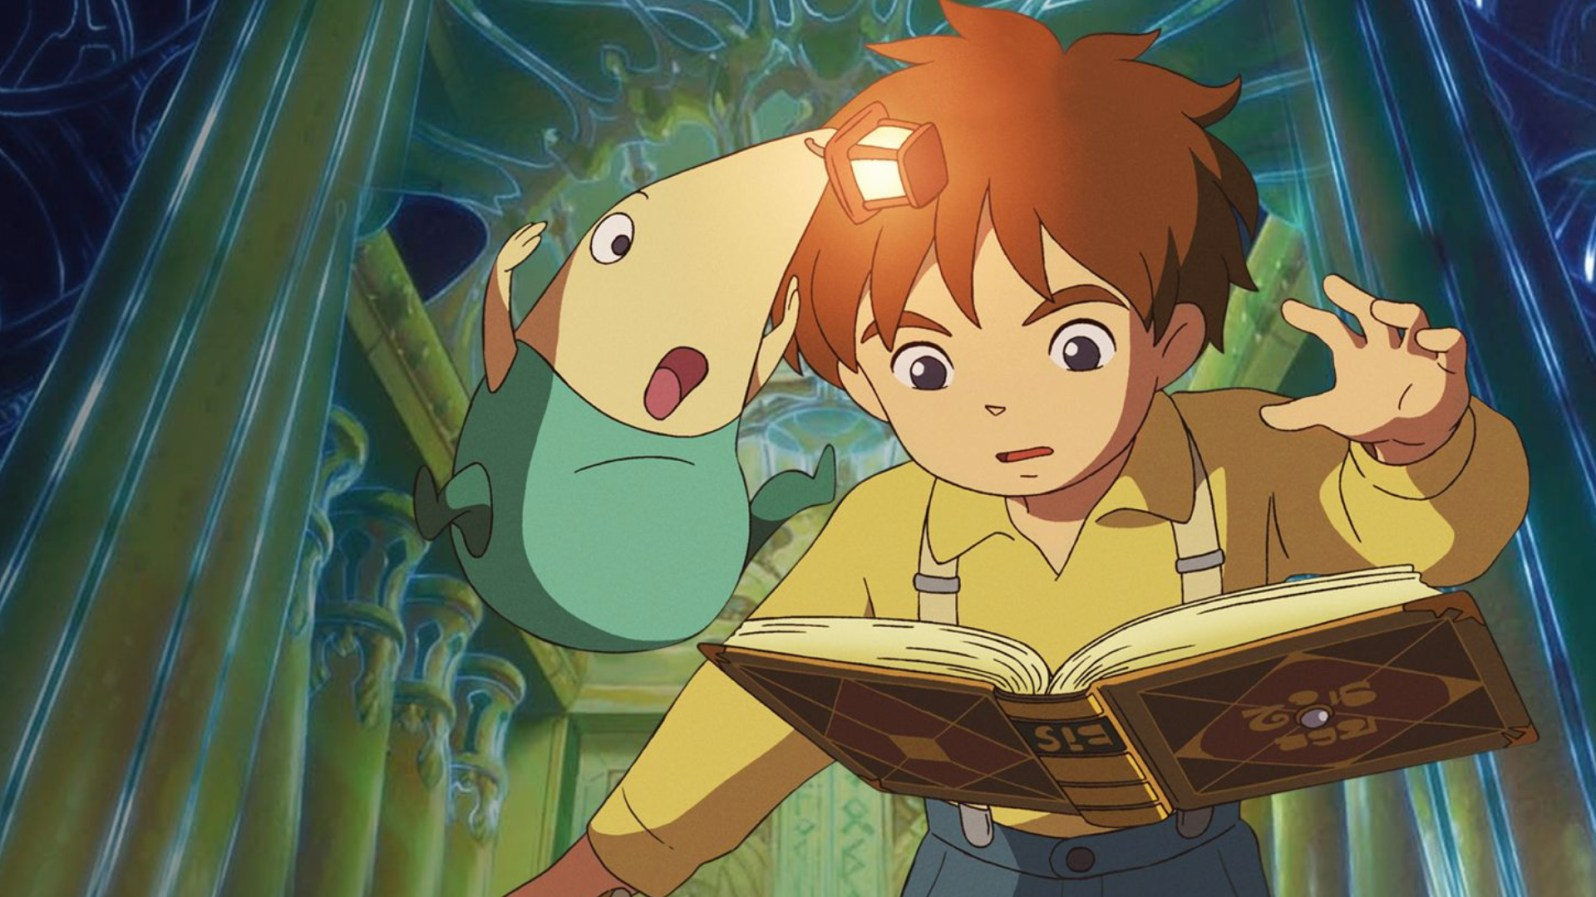 Quelle: Namco Bandai - Ni no Kuni: Wrath of the White Witch Remastered